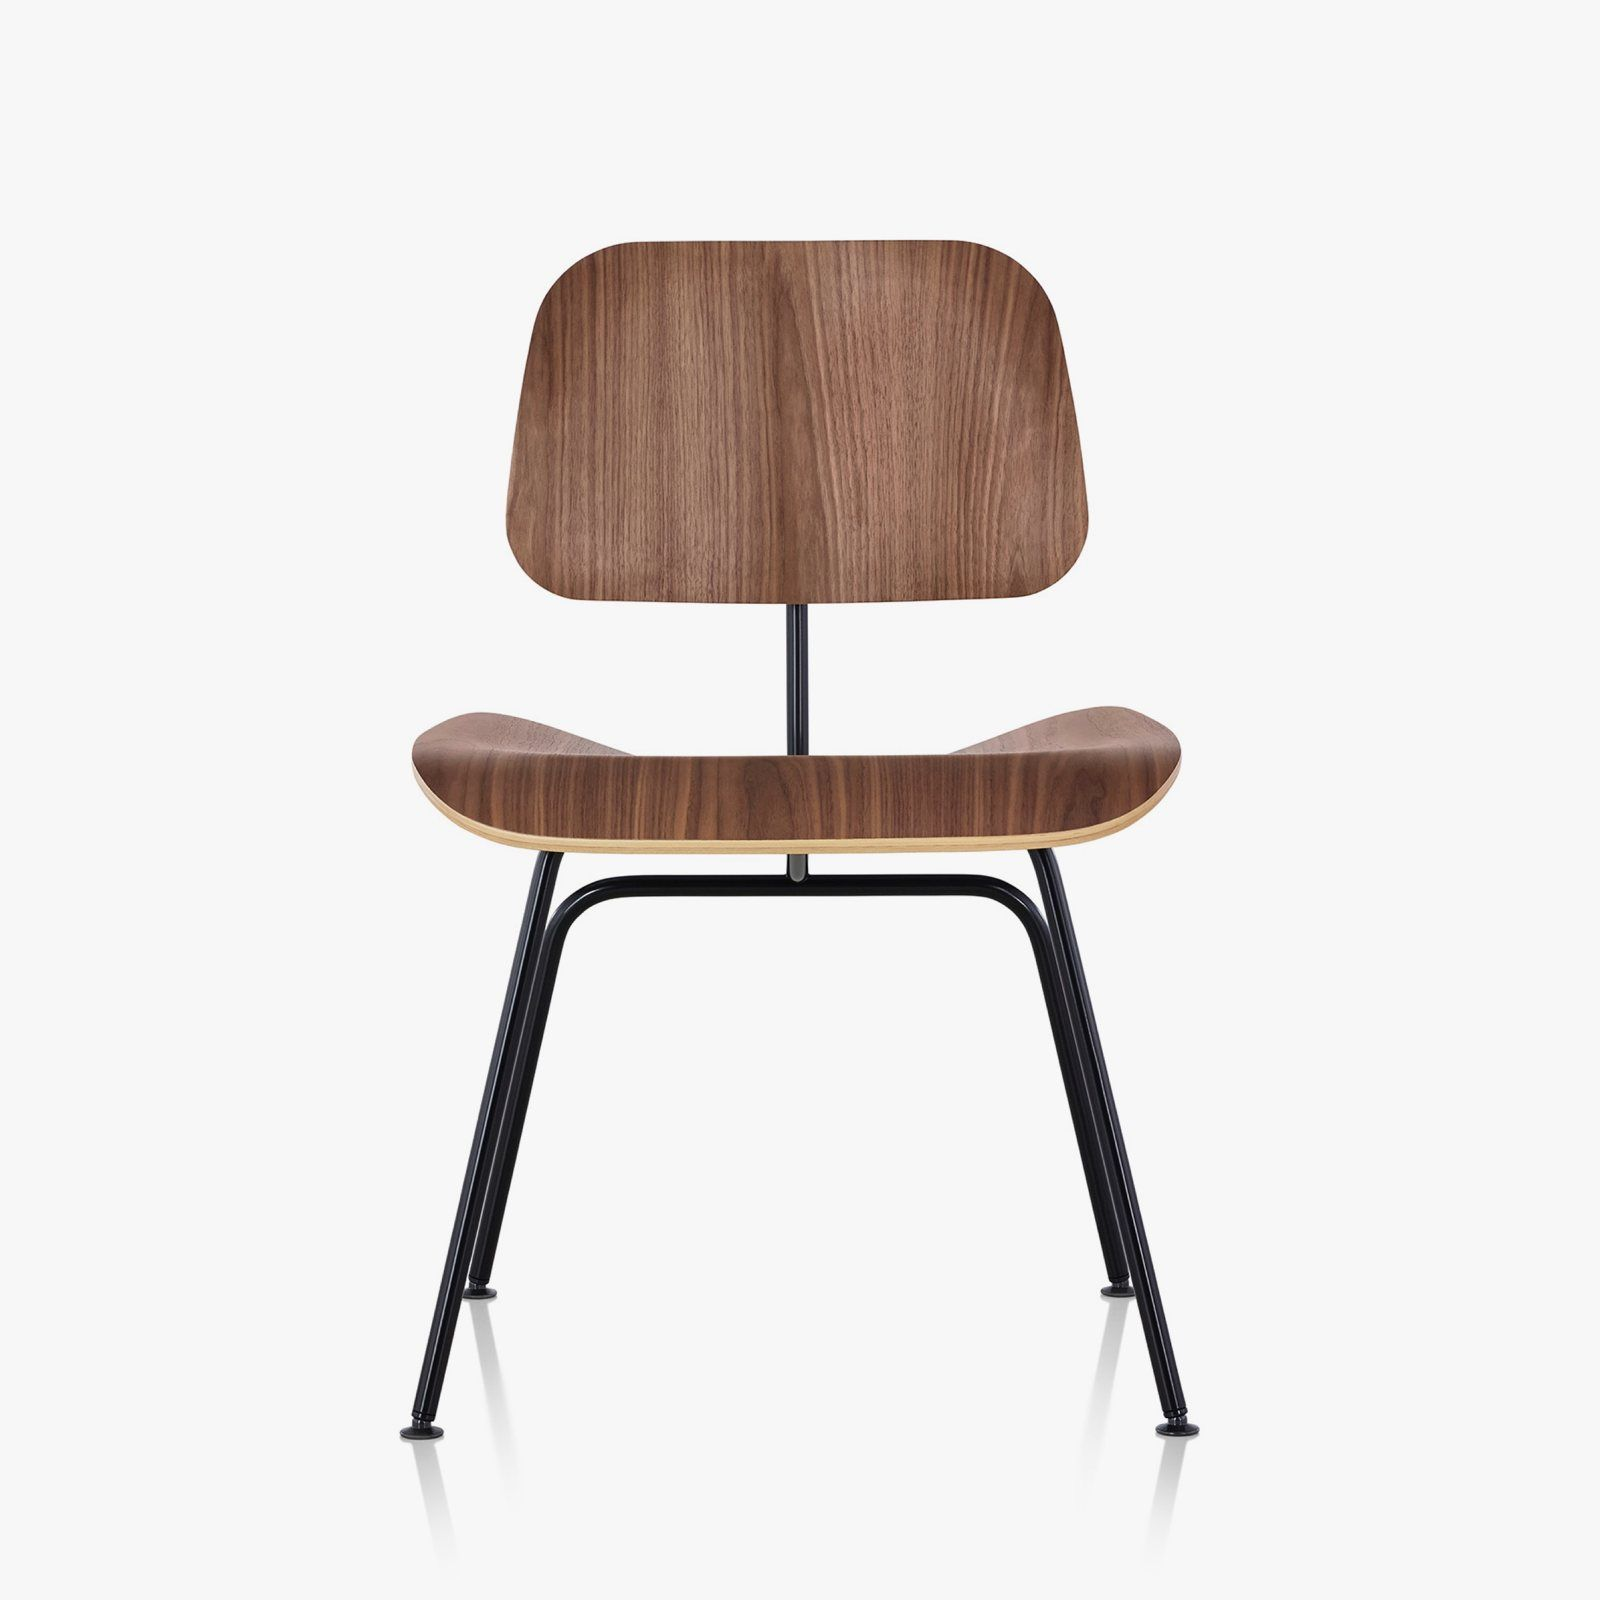 Admirable Herman Miller Eames Molded Plywood Dining Chair With Metal Pabps2019 Chair Design Images Pabps2019Com